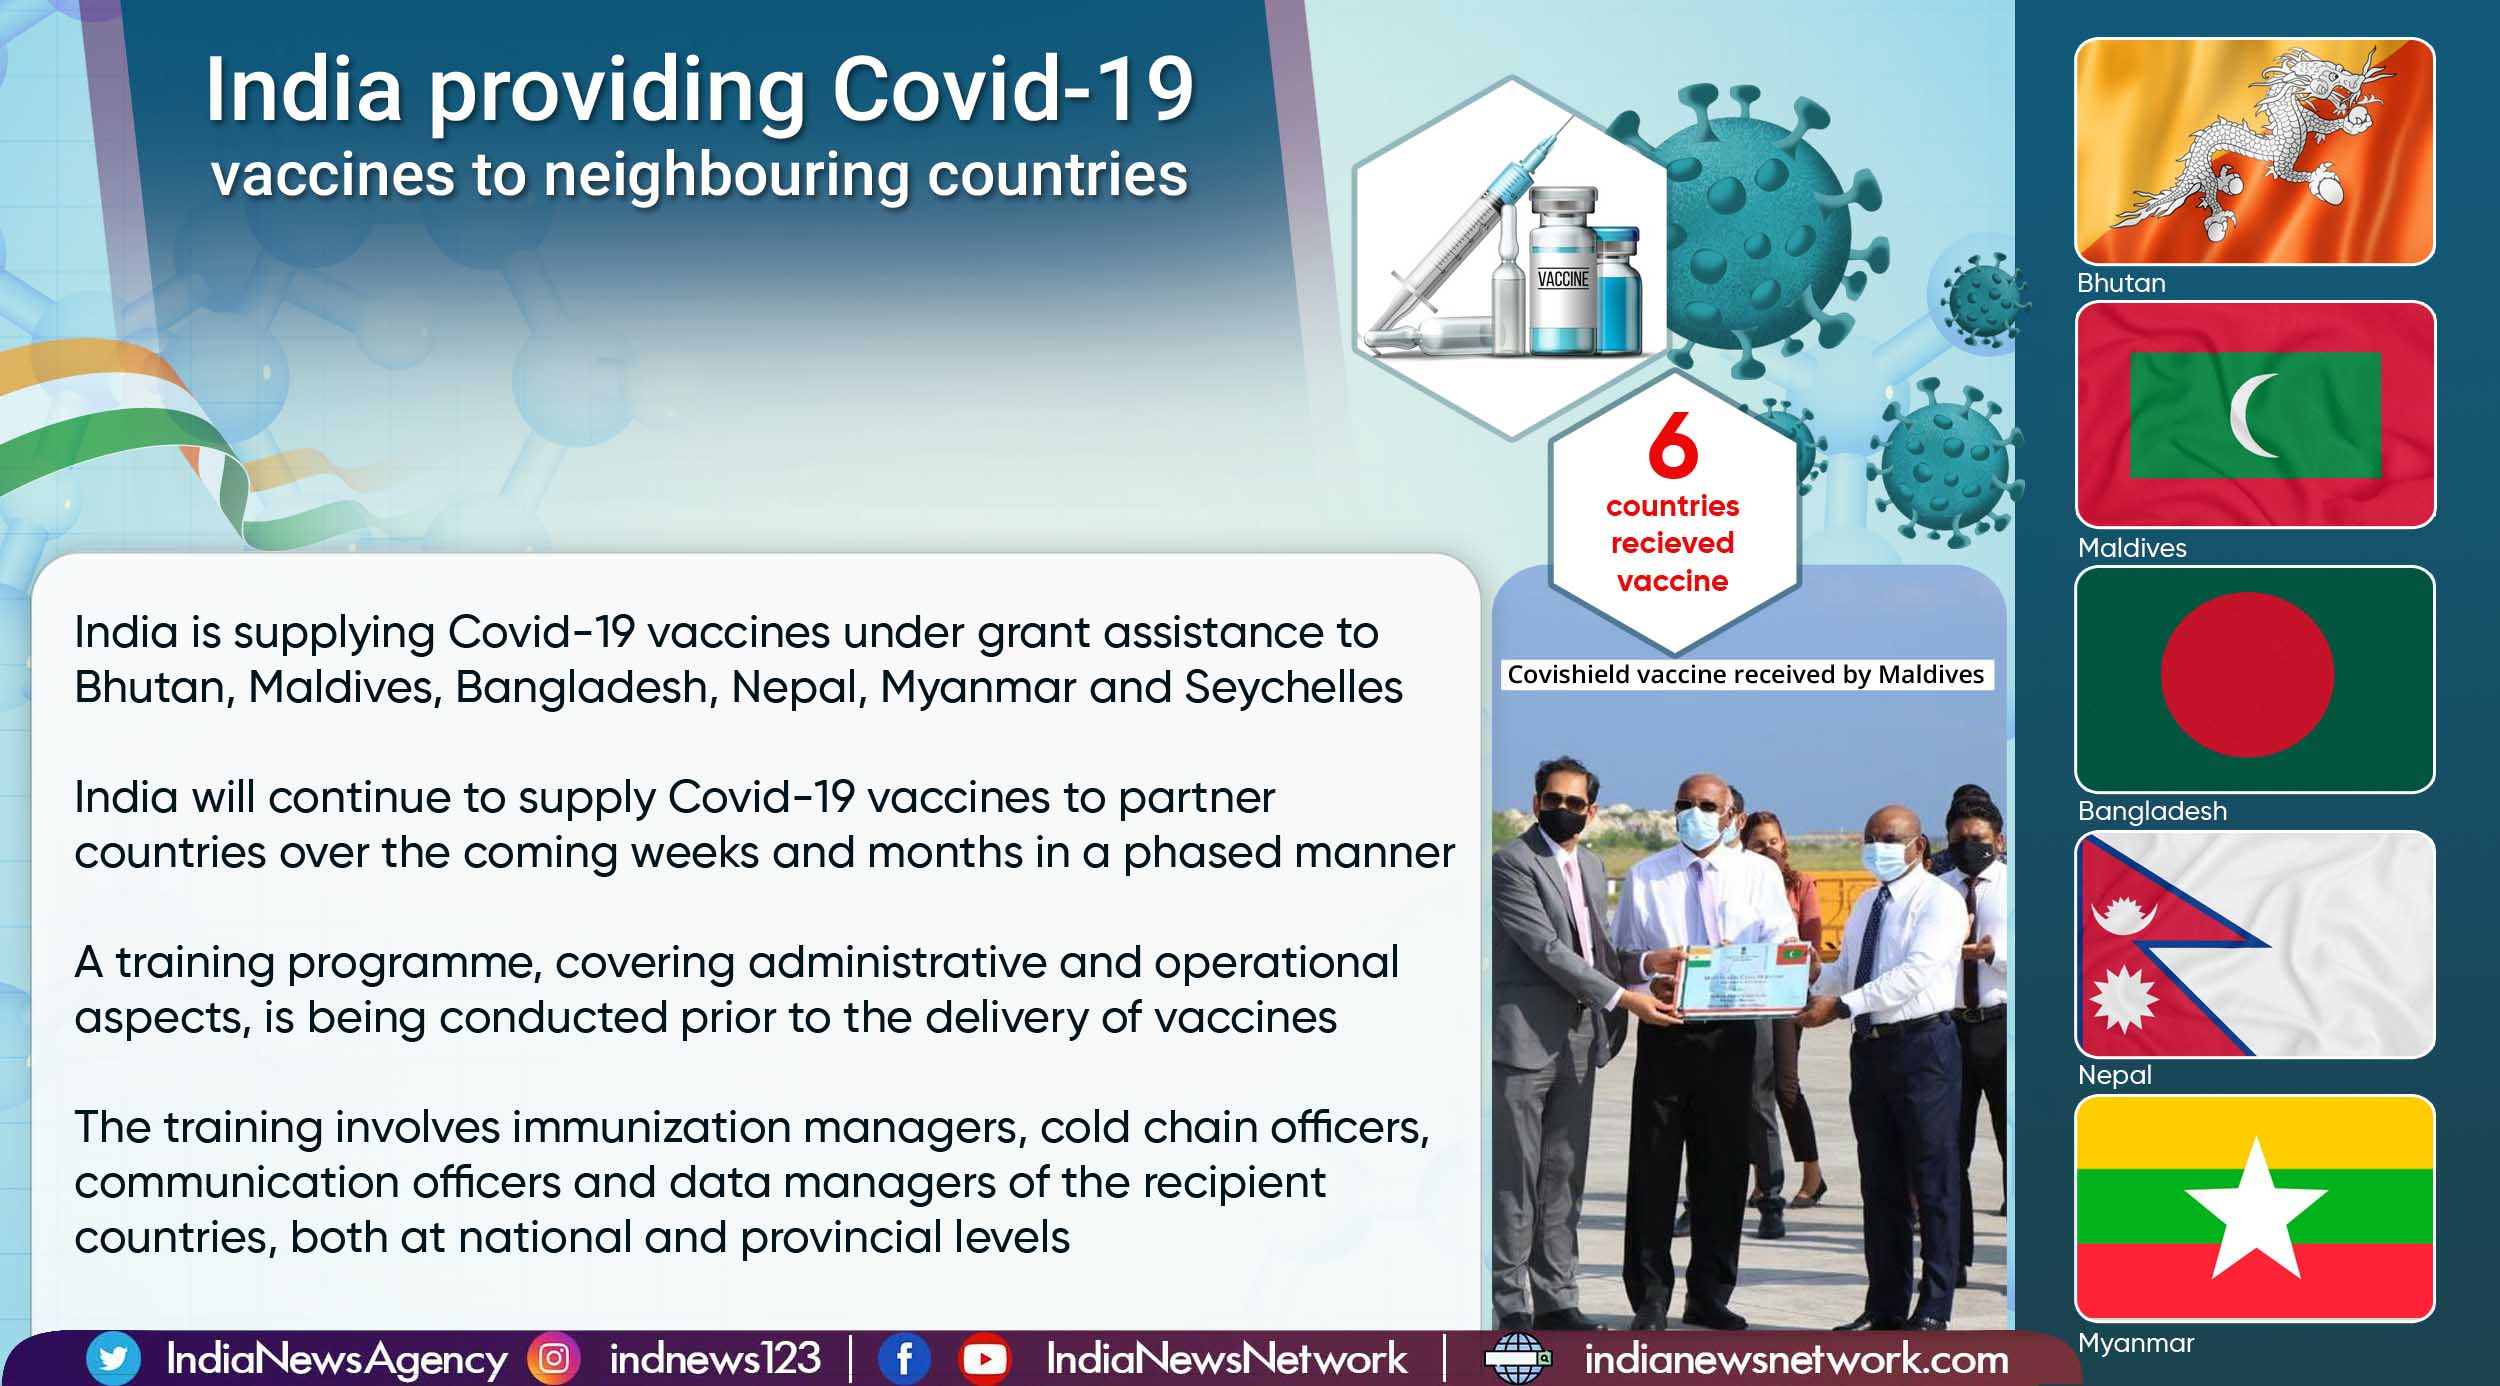 Pharmacy of the world: India supplying Covid-19 vaccines to its neighbours